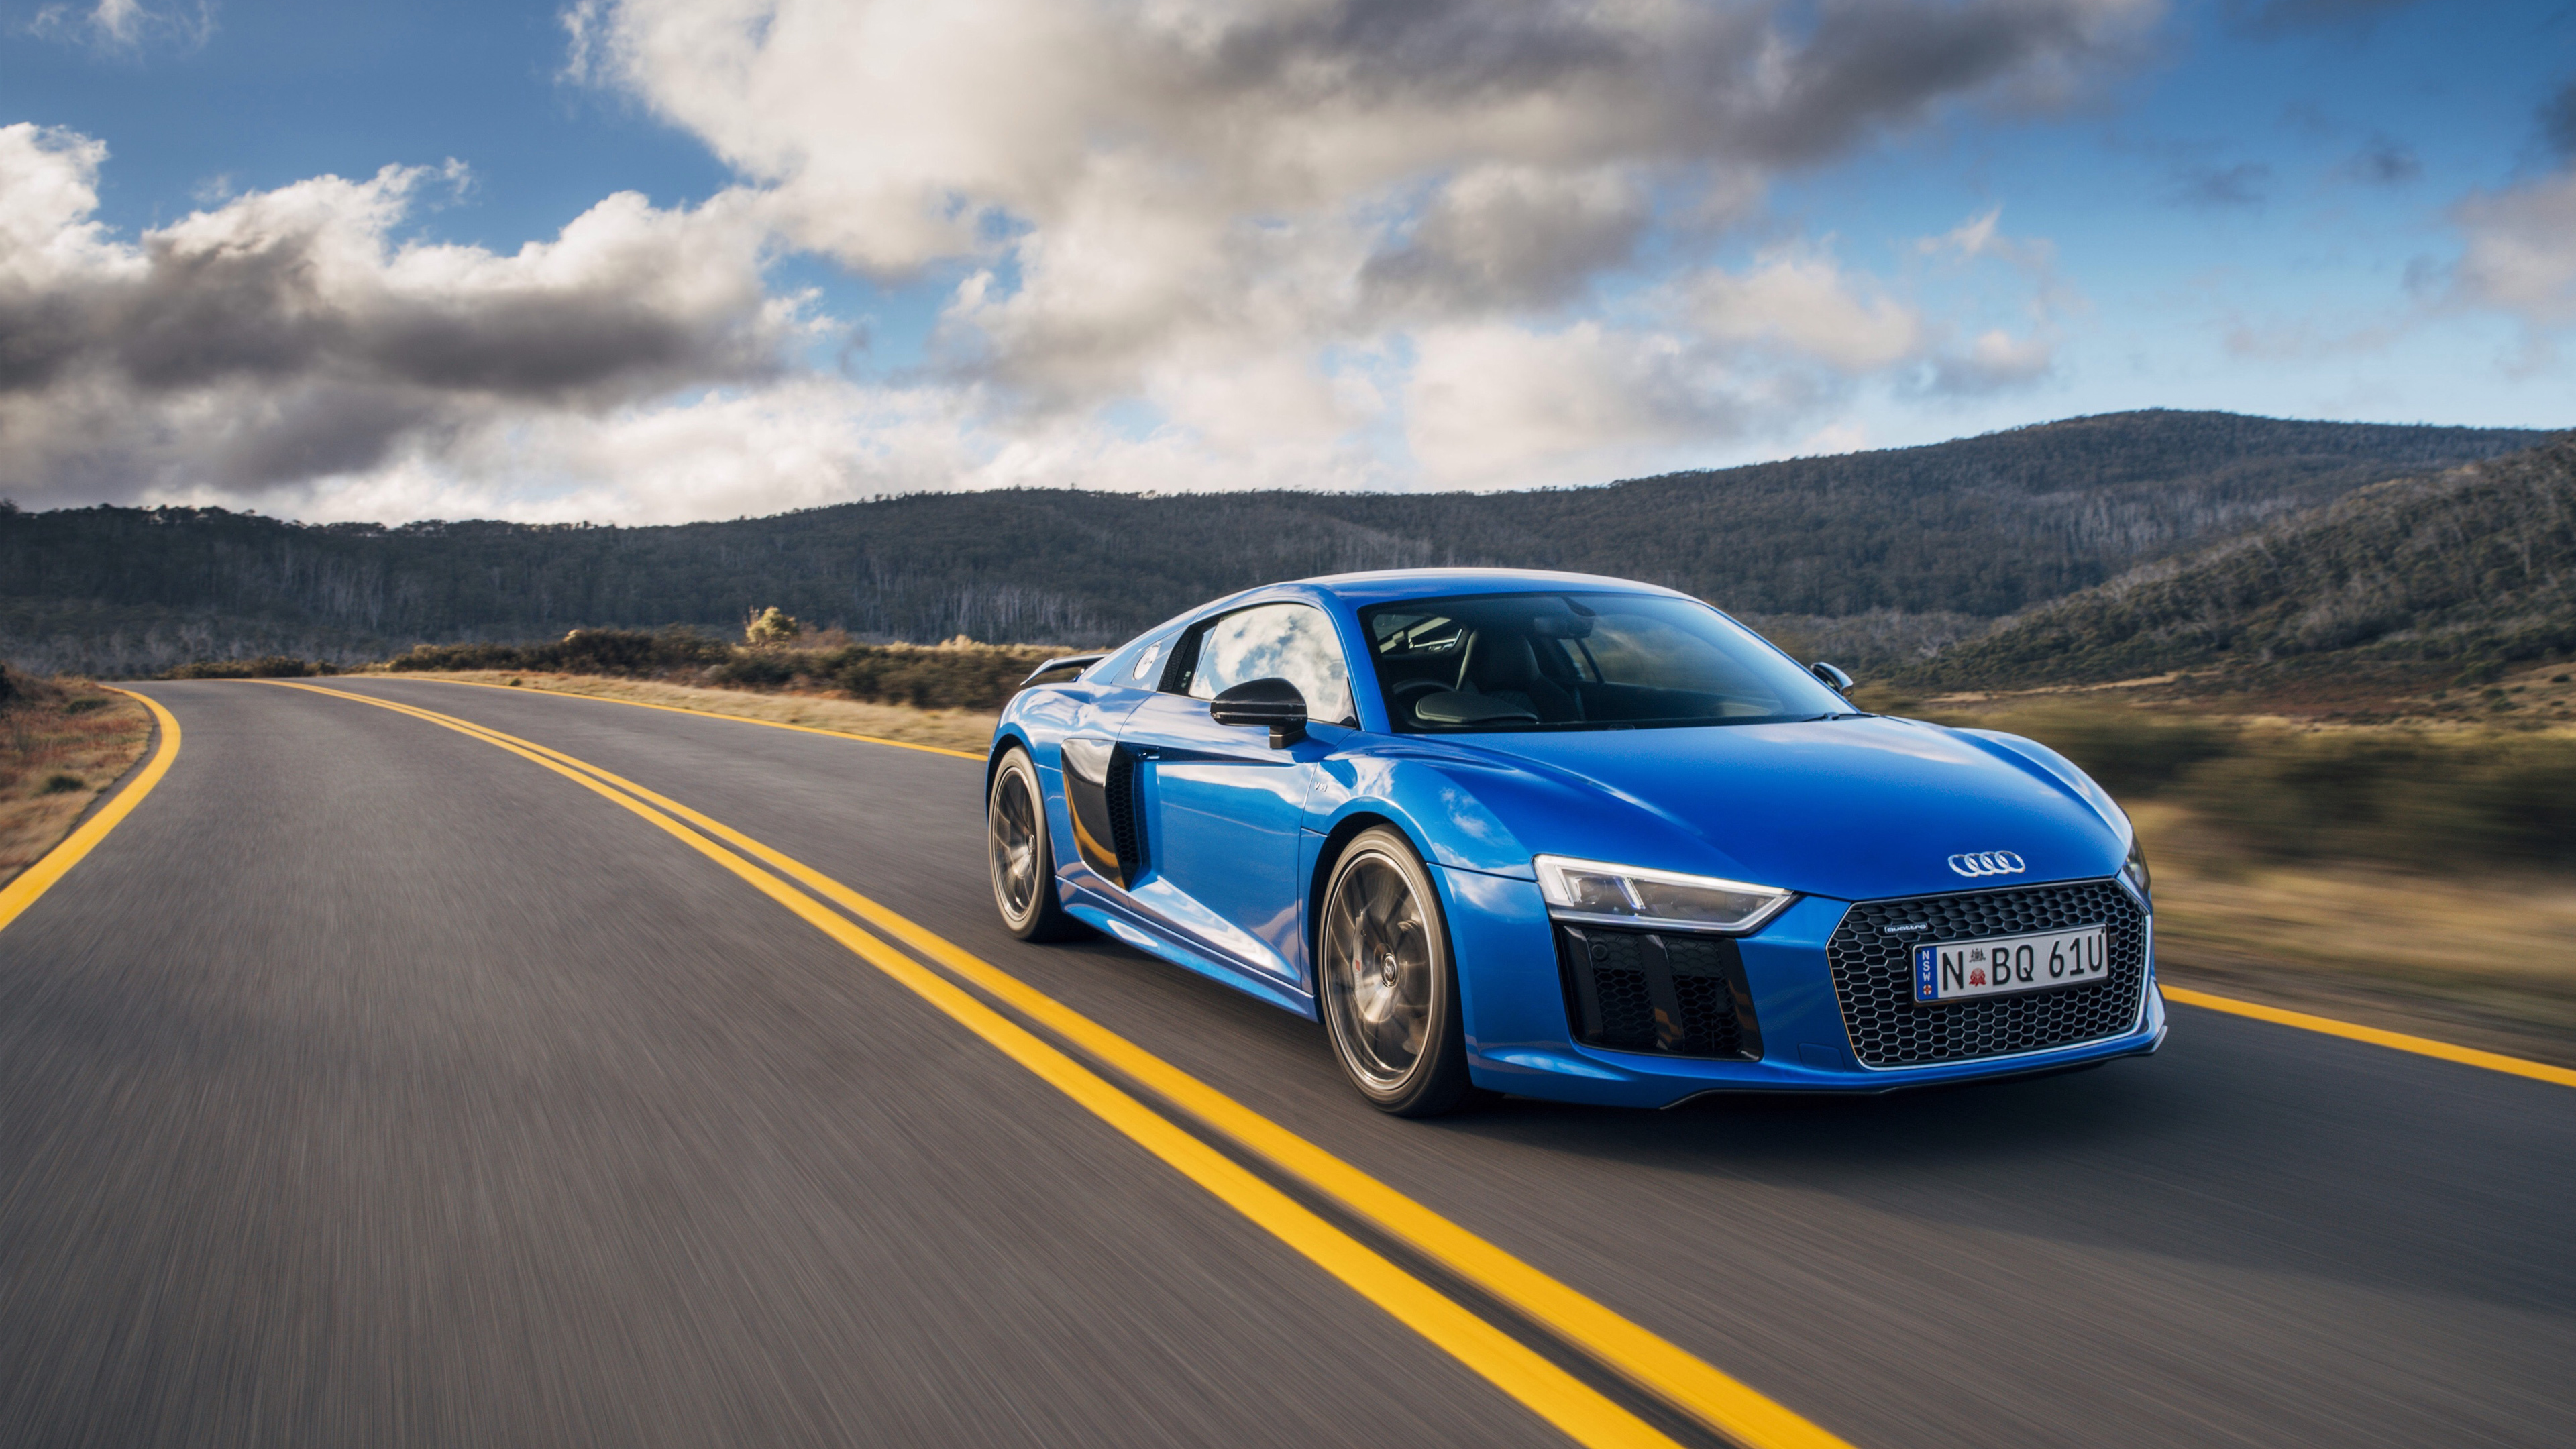 Audi R8 Hd Wallpaper 2016 Audi R8 4k Wallpaper Hd Car - 4k Ultra Hd Cars , HD Wallpaper & Backgrounds